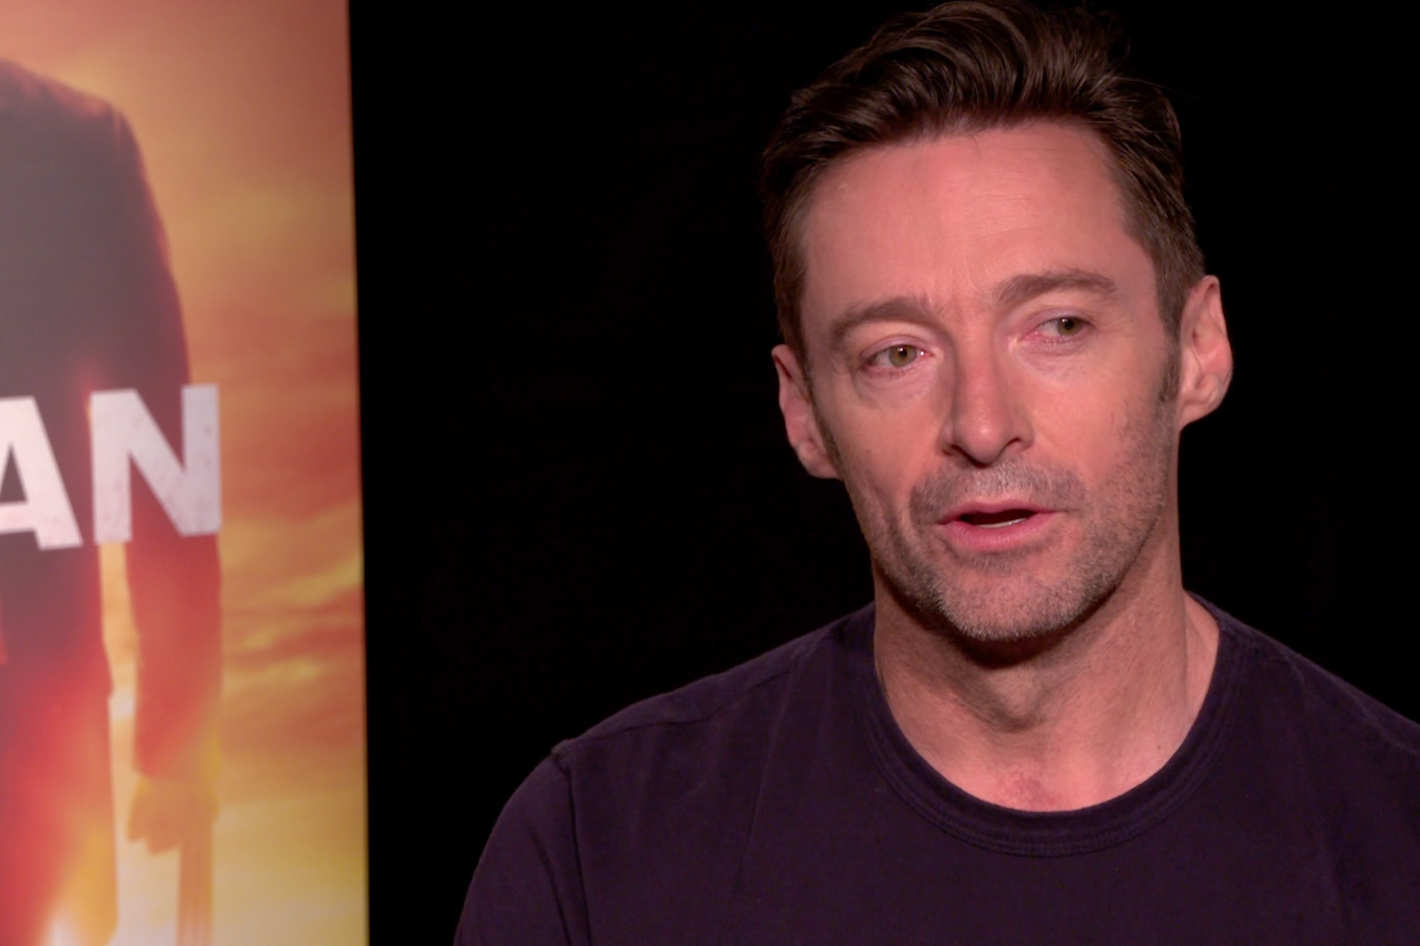 pics Watch Hugh Jackman Transform From Nice Guy To Wolverine